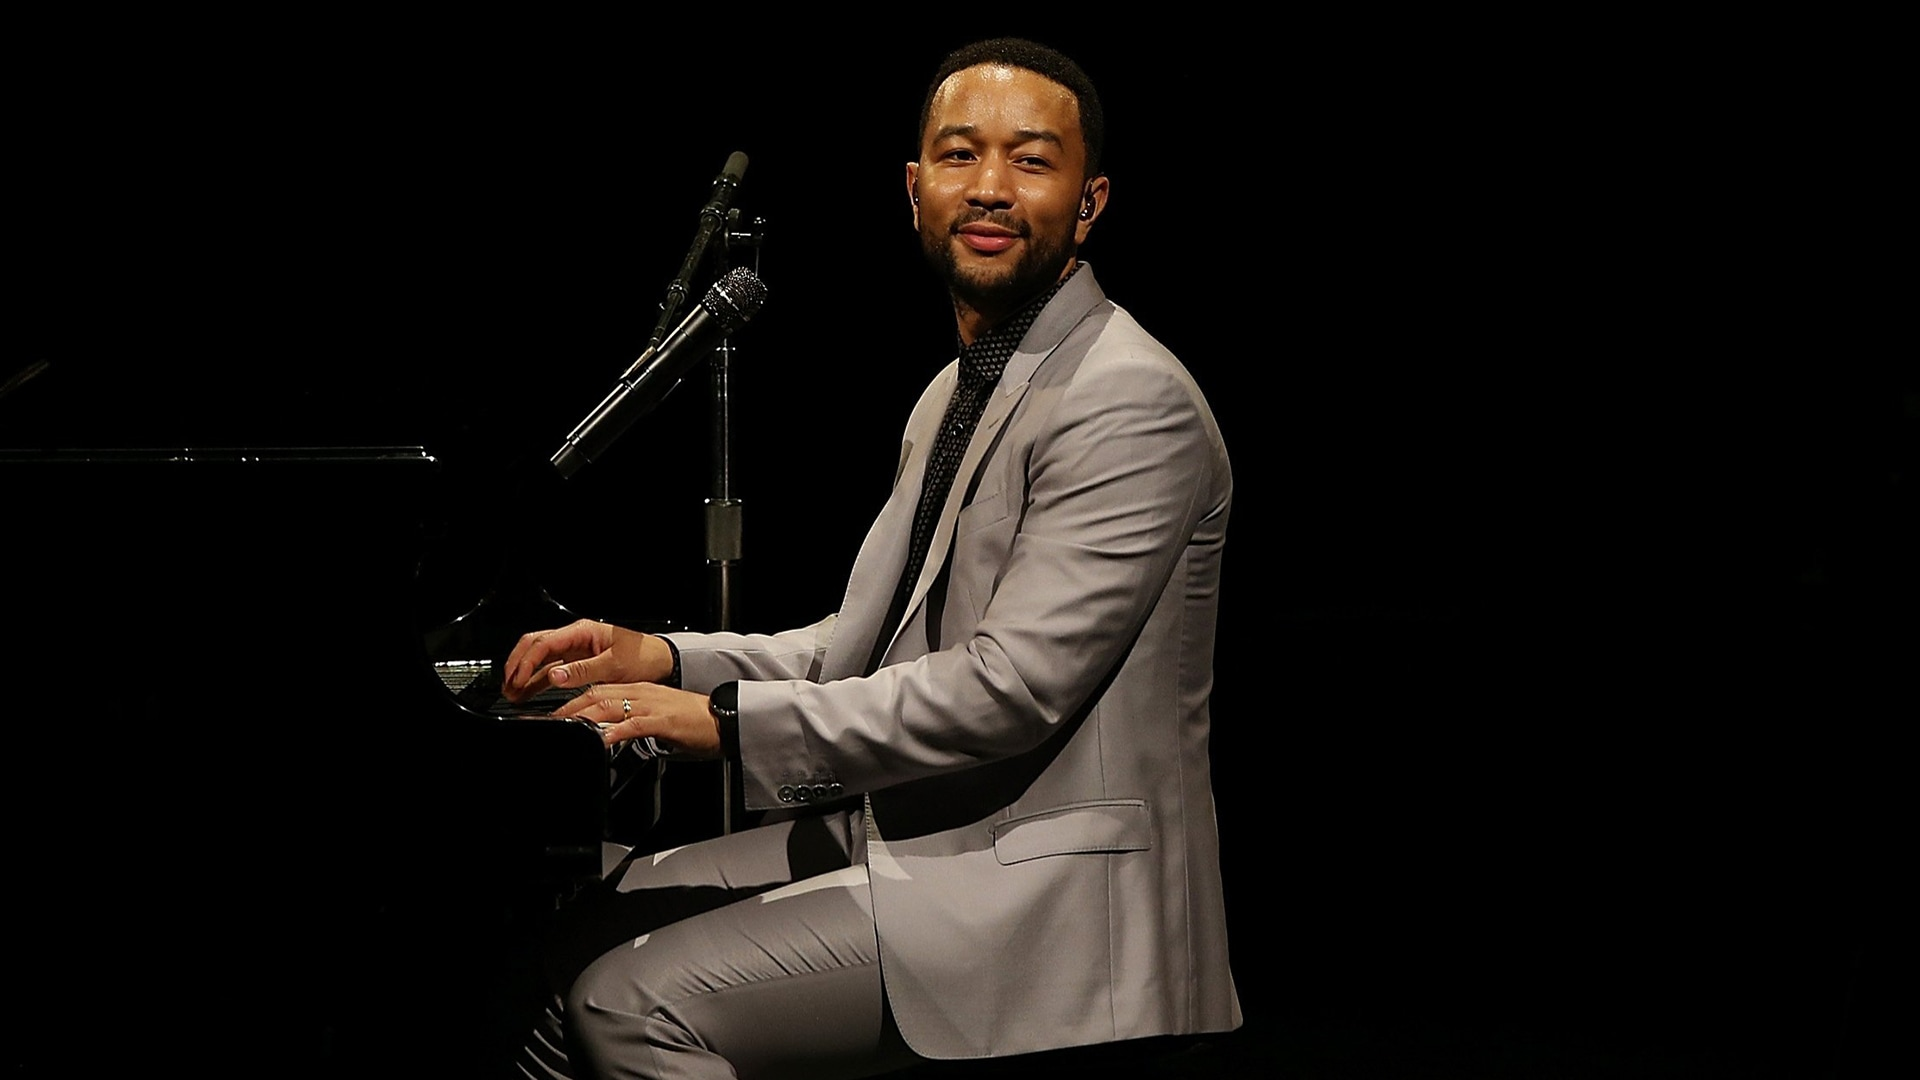 Image: John Legend Performs At The Greek Theatre